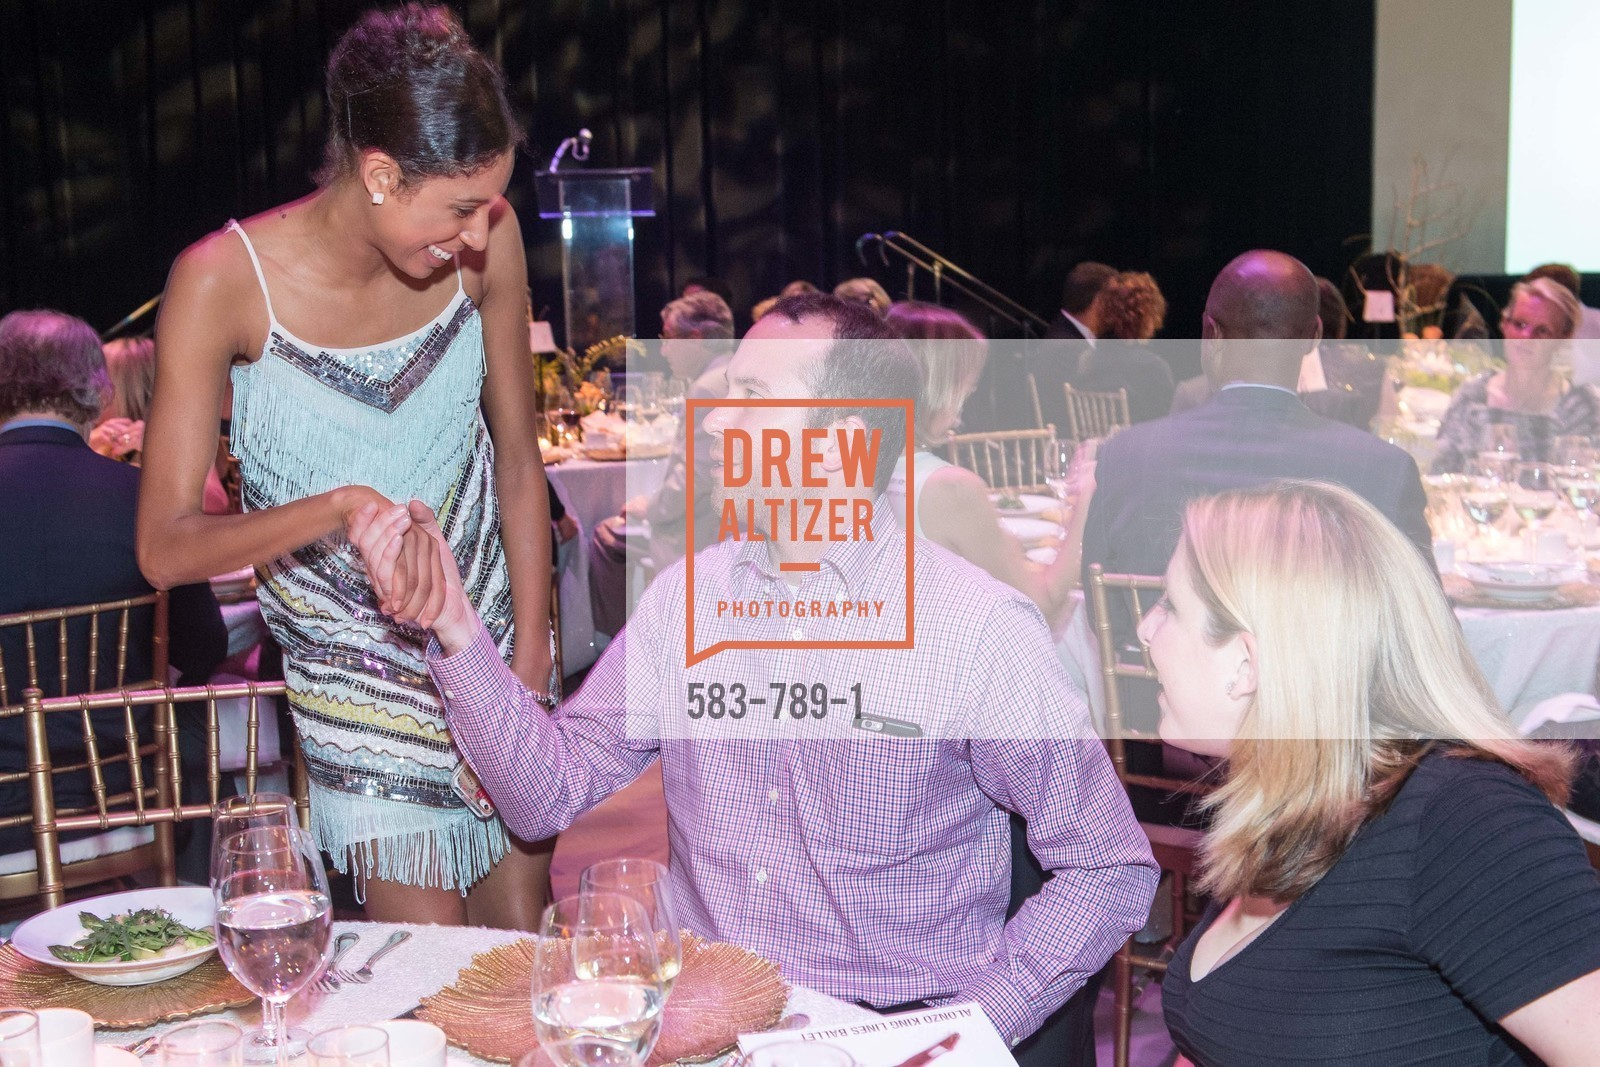 Extras, ALONZO KING LINE'S Ballet Spring Gala 2015, April 11th, 2015, Photo,Drew Altizer, Drew Altizer Photography, full-service agency, private events, San Francisco photographer, photographer california